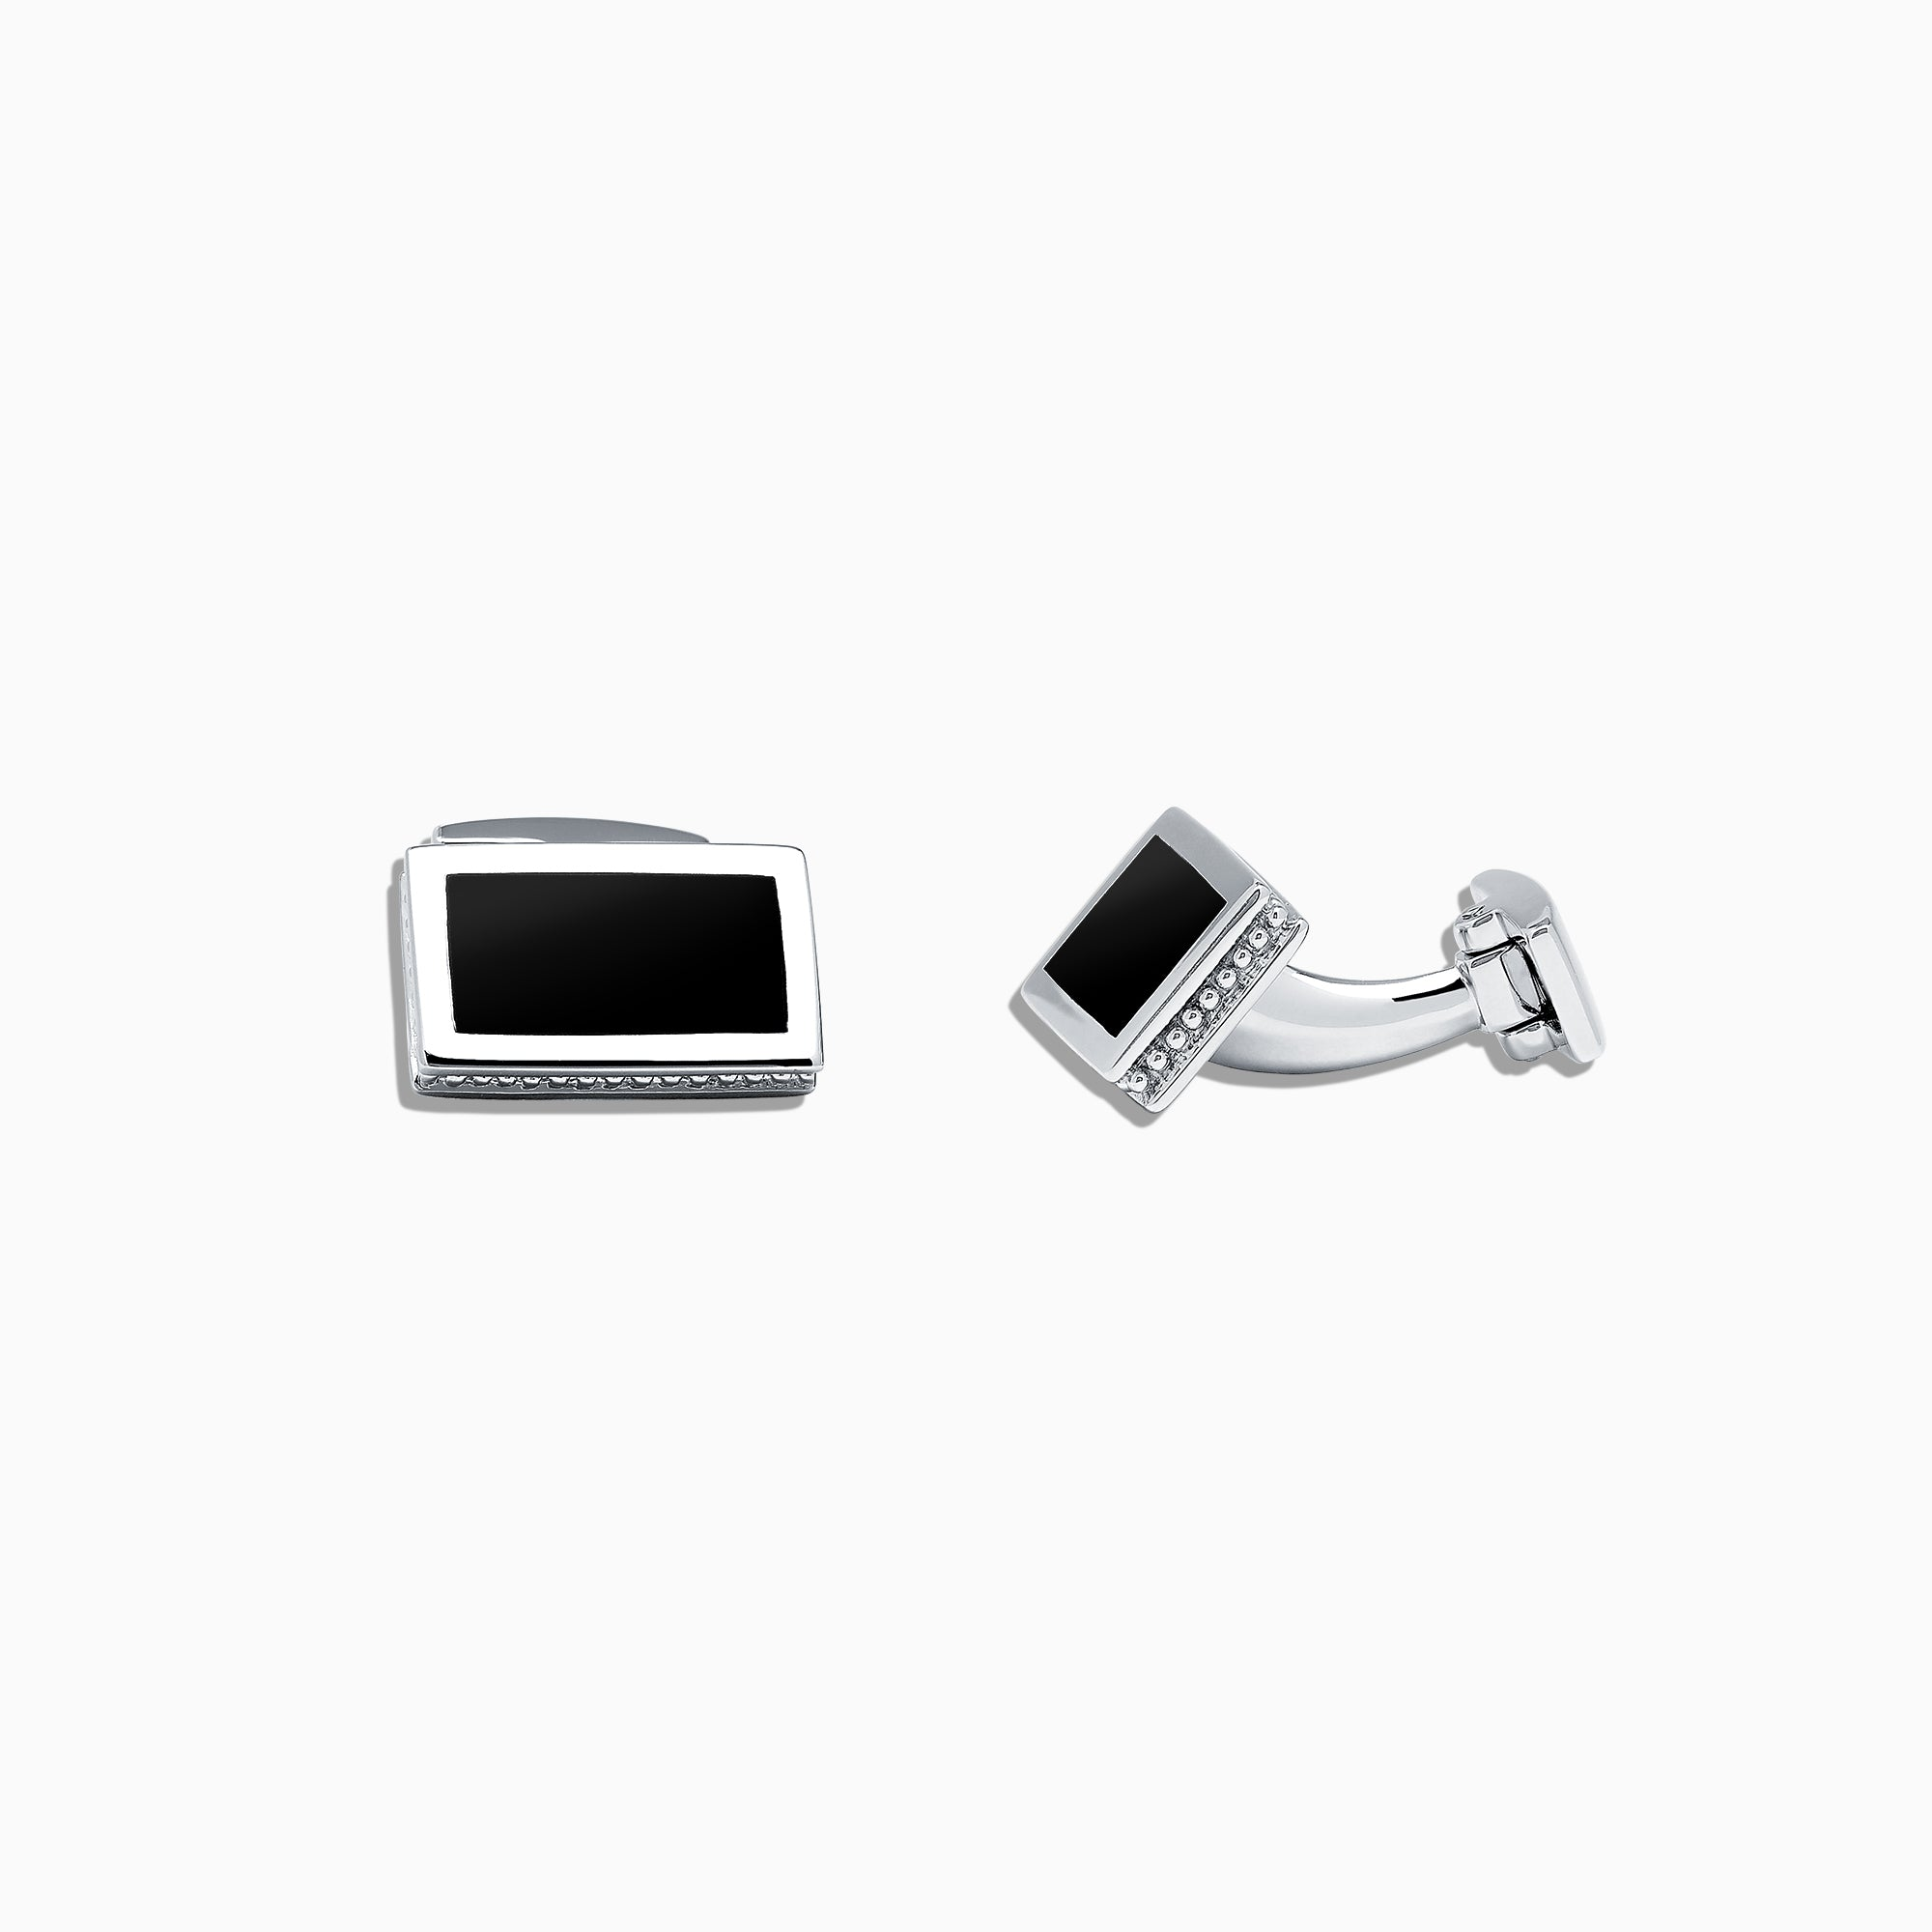 Effy Men's Sterling Silver and Black Agate Cufflinks, 8.00 TCW